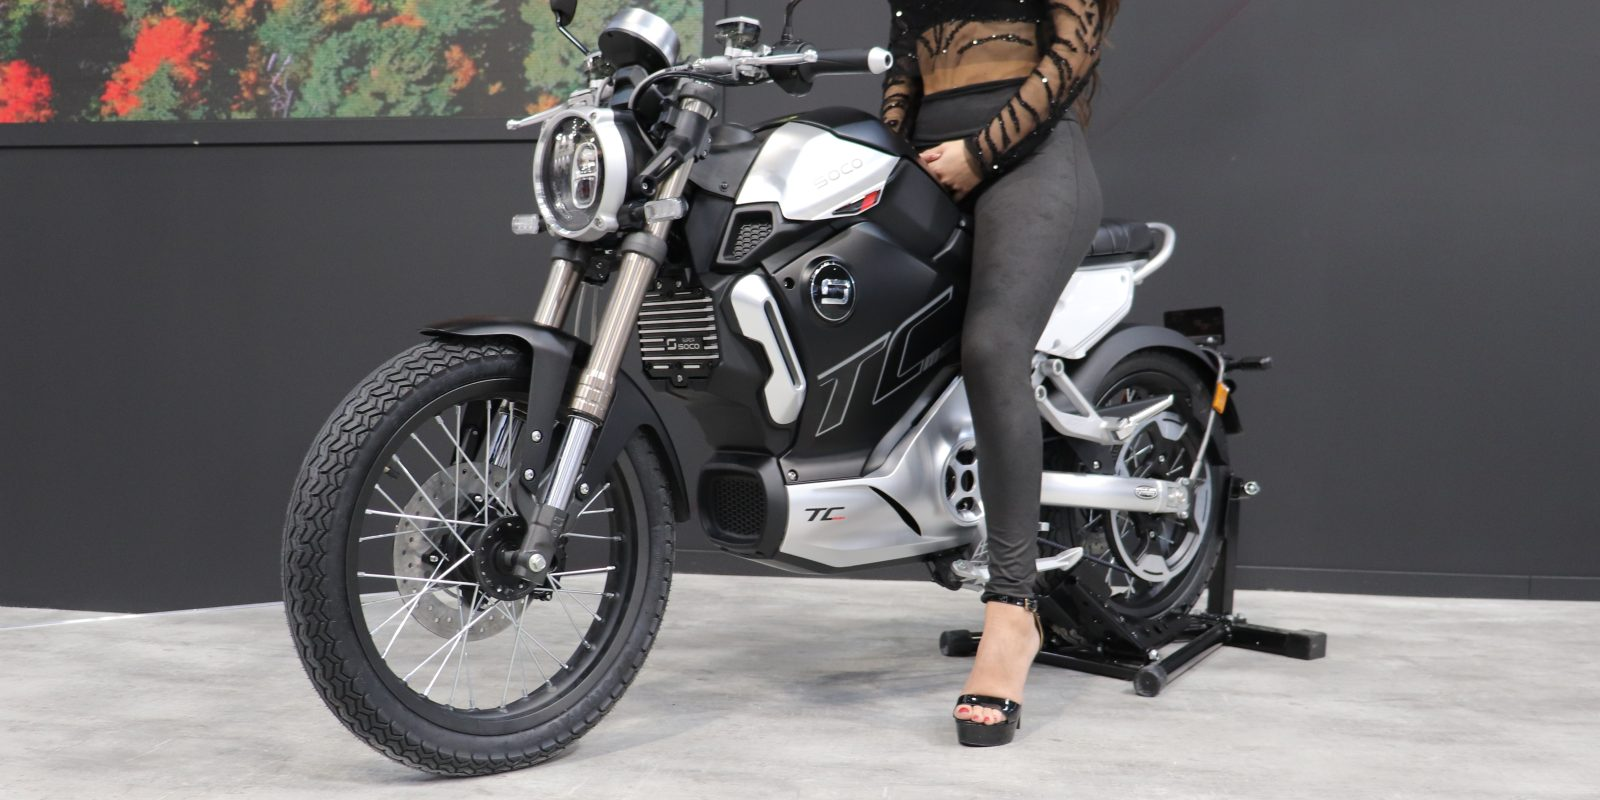 Super Soco Unveils New 5 100 And 62 Mph Electric Motorcycle The Tc Max